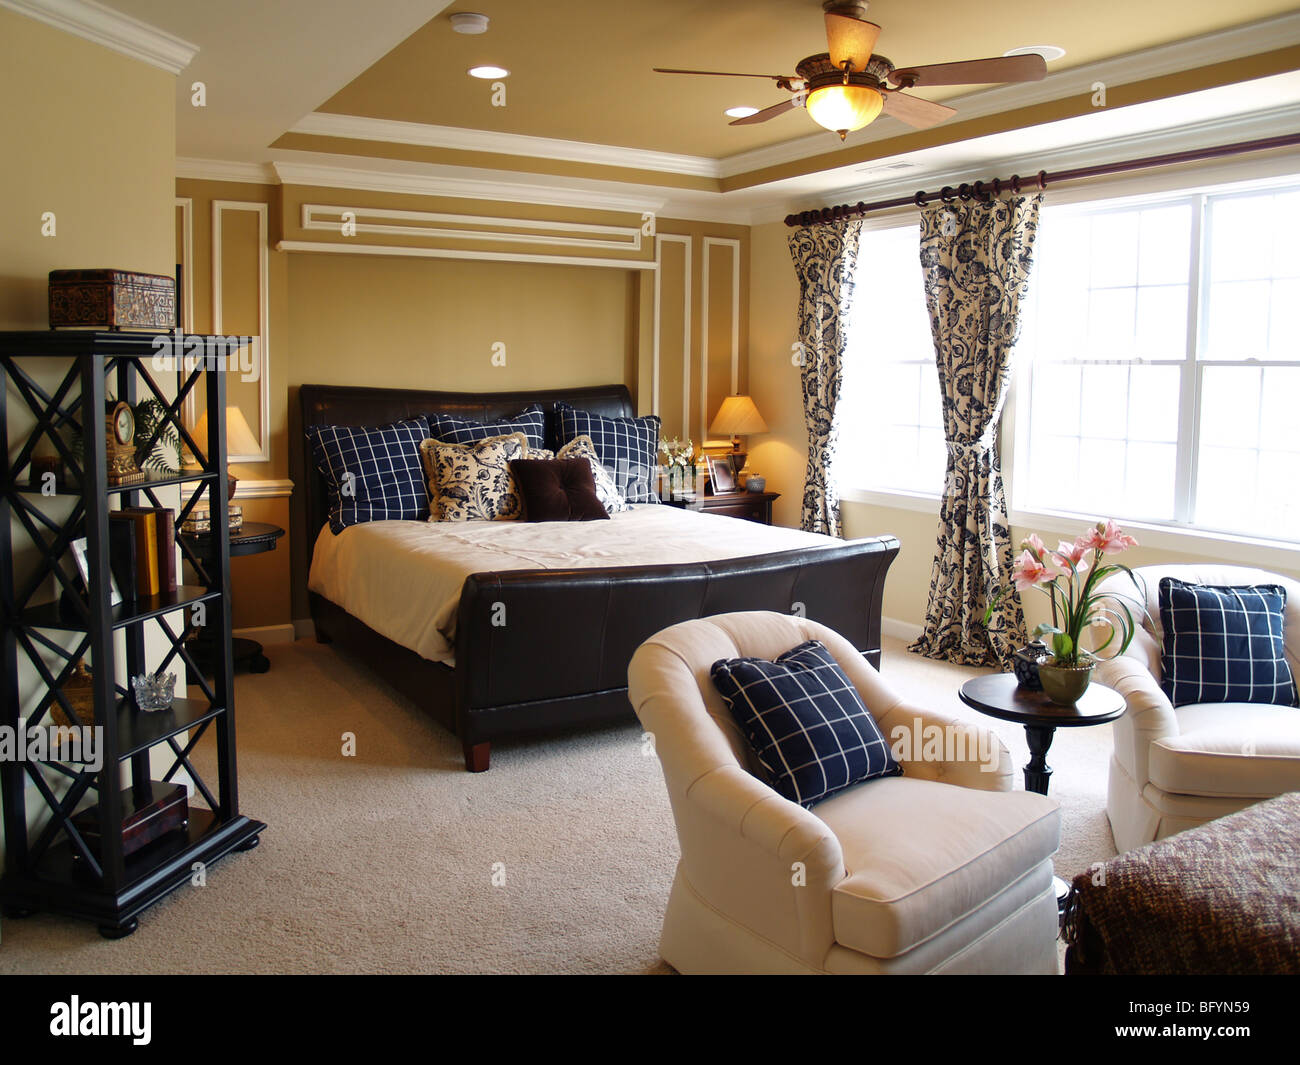 Nicely Decorated Bedrooms Nicely Decorated Master Bedroom In A Newly Built Luxury Home Stock